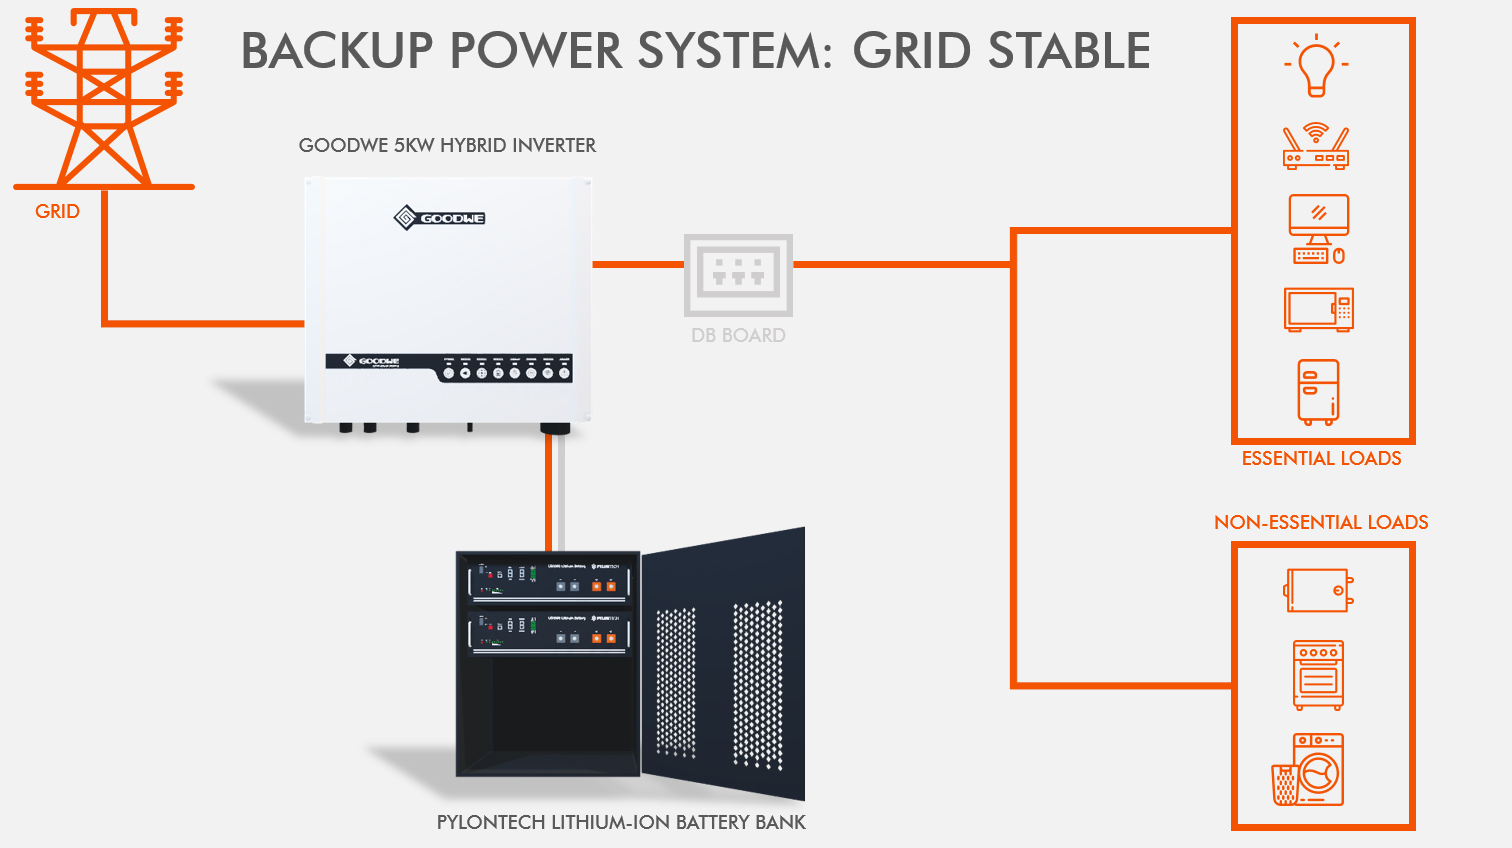 Backup Power System - Grid Stable